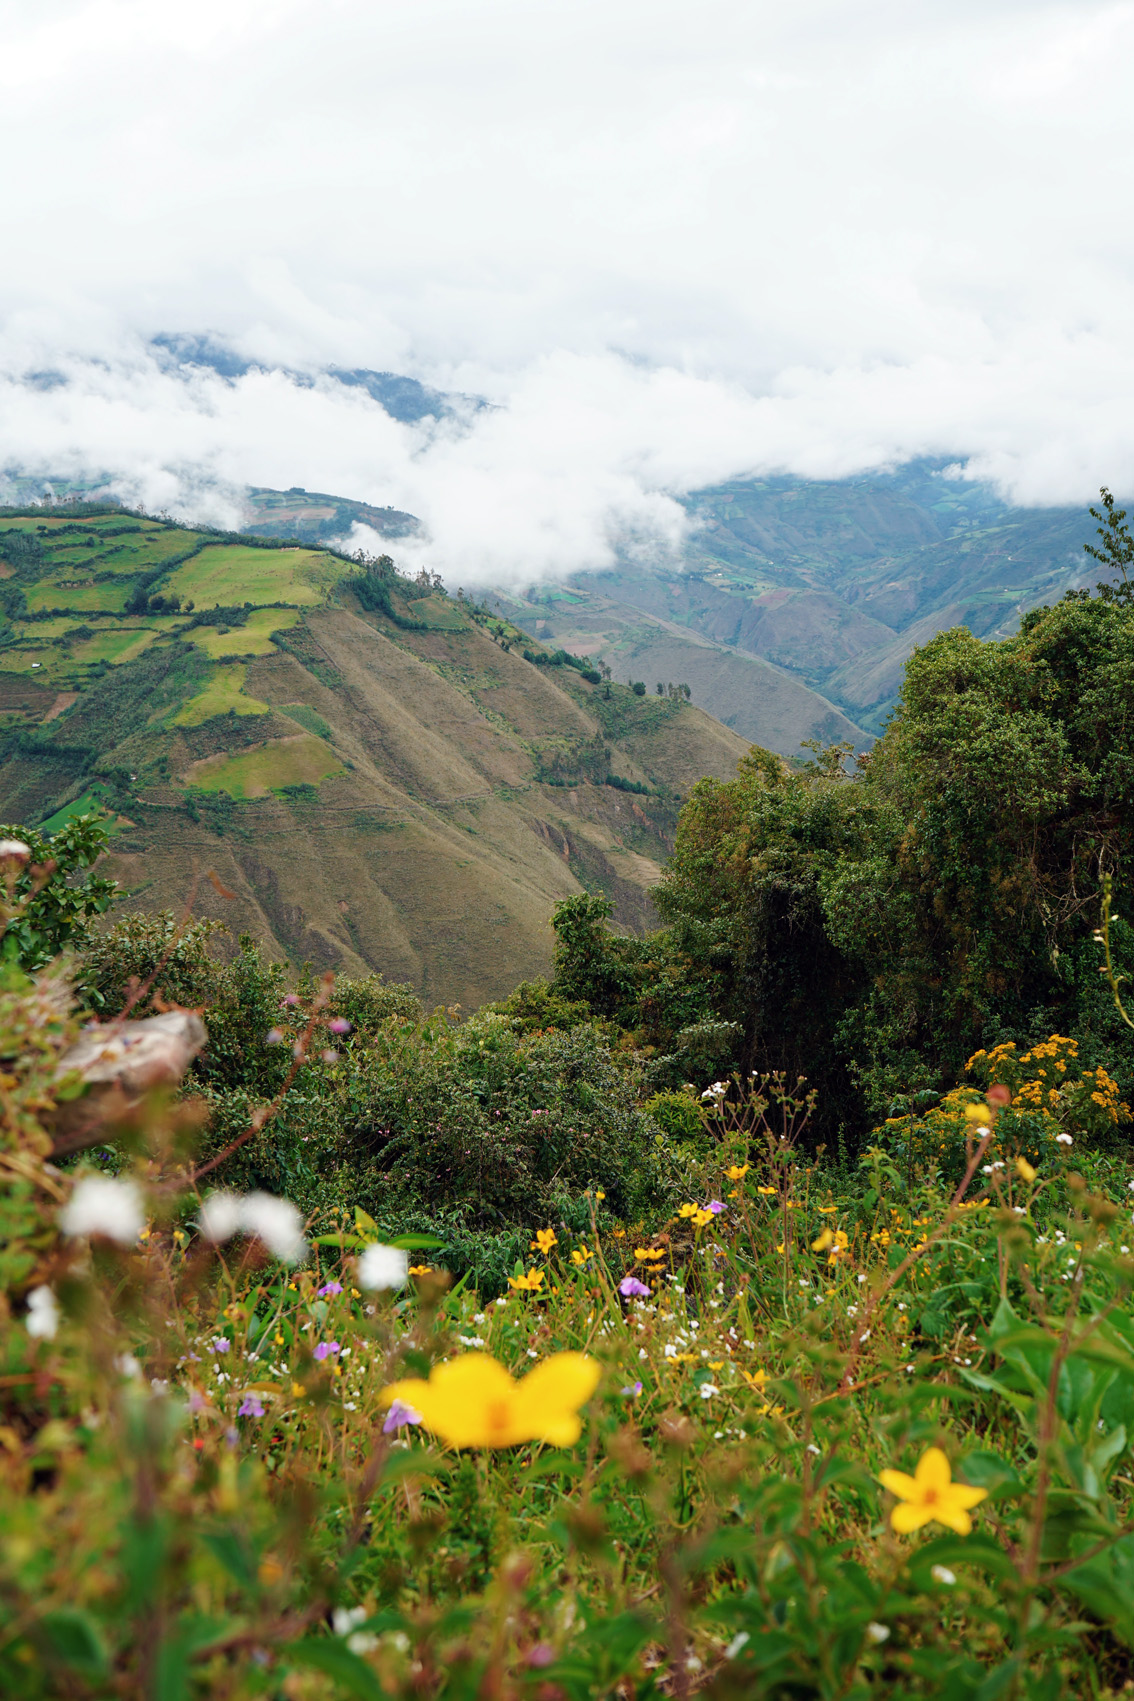 7-1 Lesser known places in Peru: Chachapoyas - a natural paradise to discover.